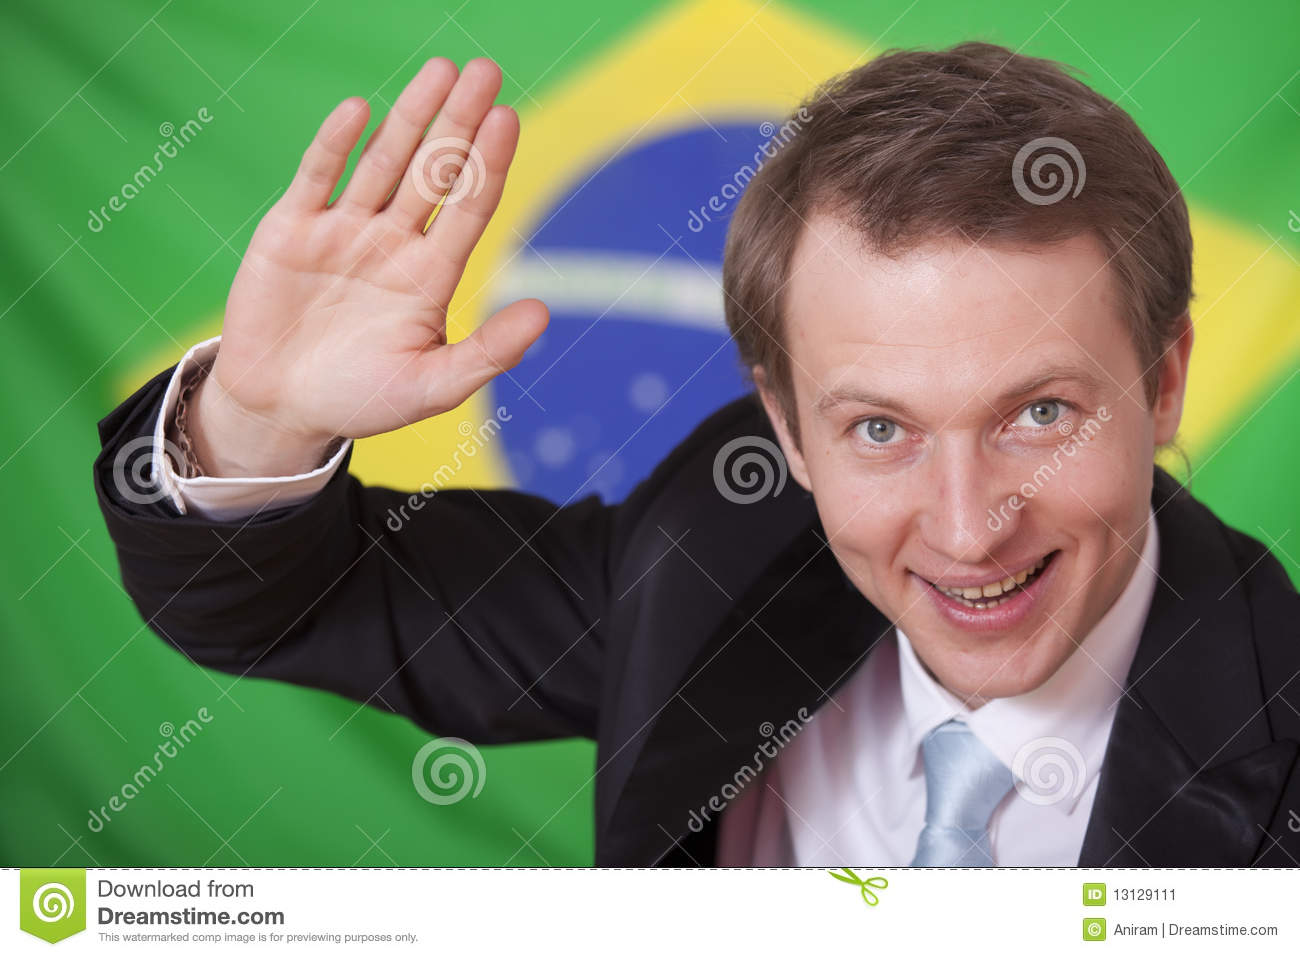 Greetings from brazil stock image image of greeting 13129111 greetings from brazil m4hsunfo